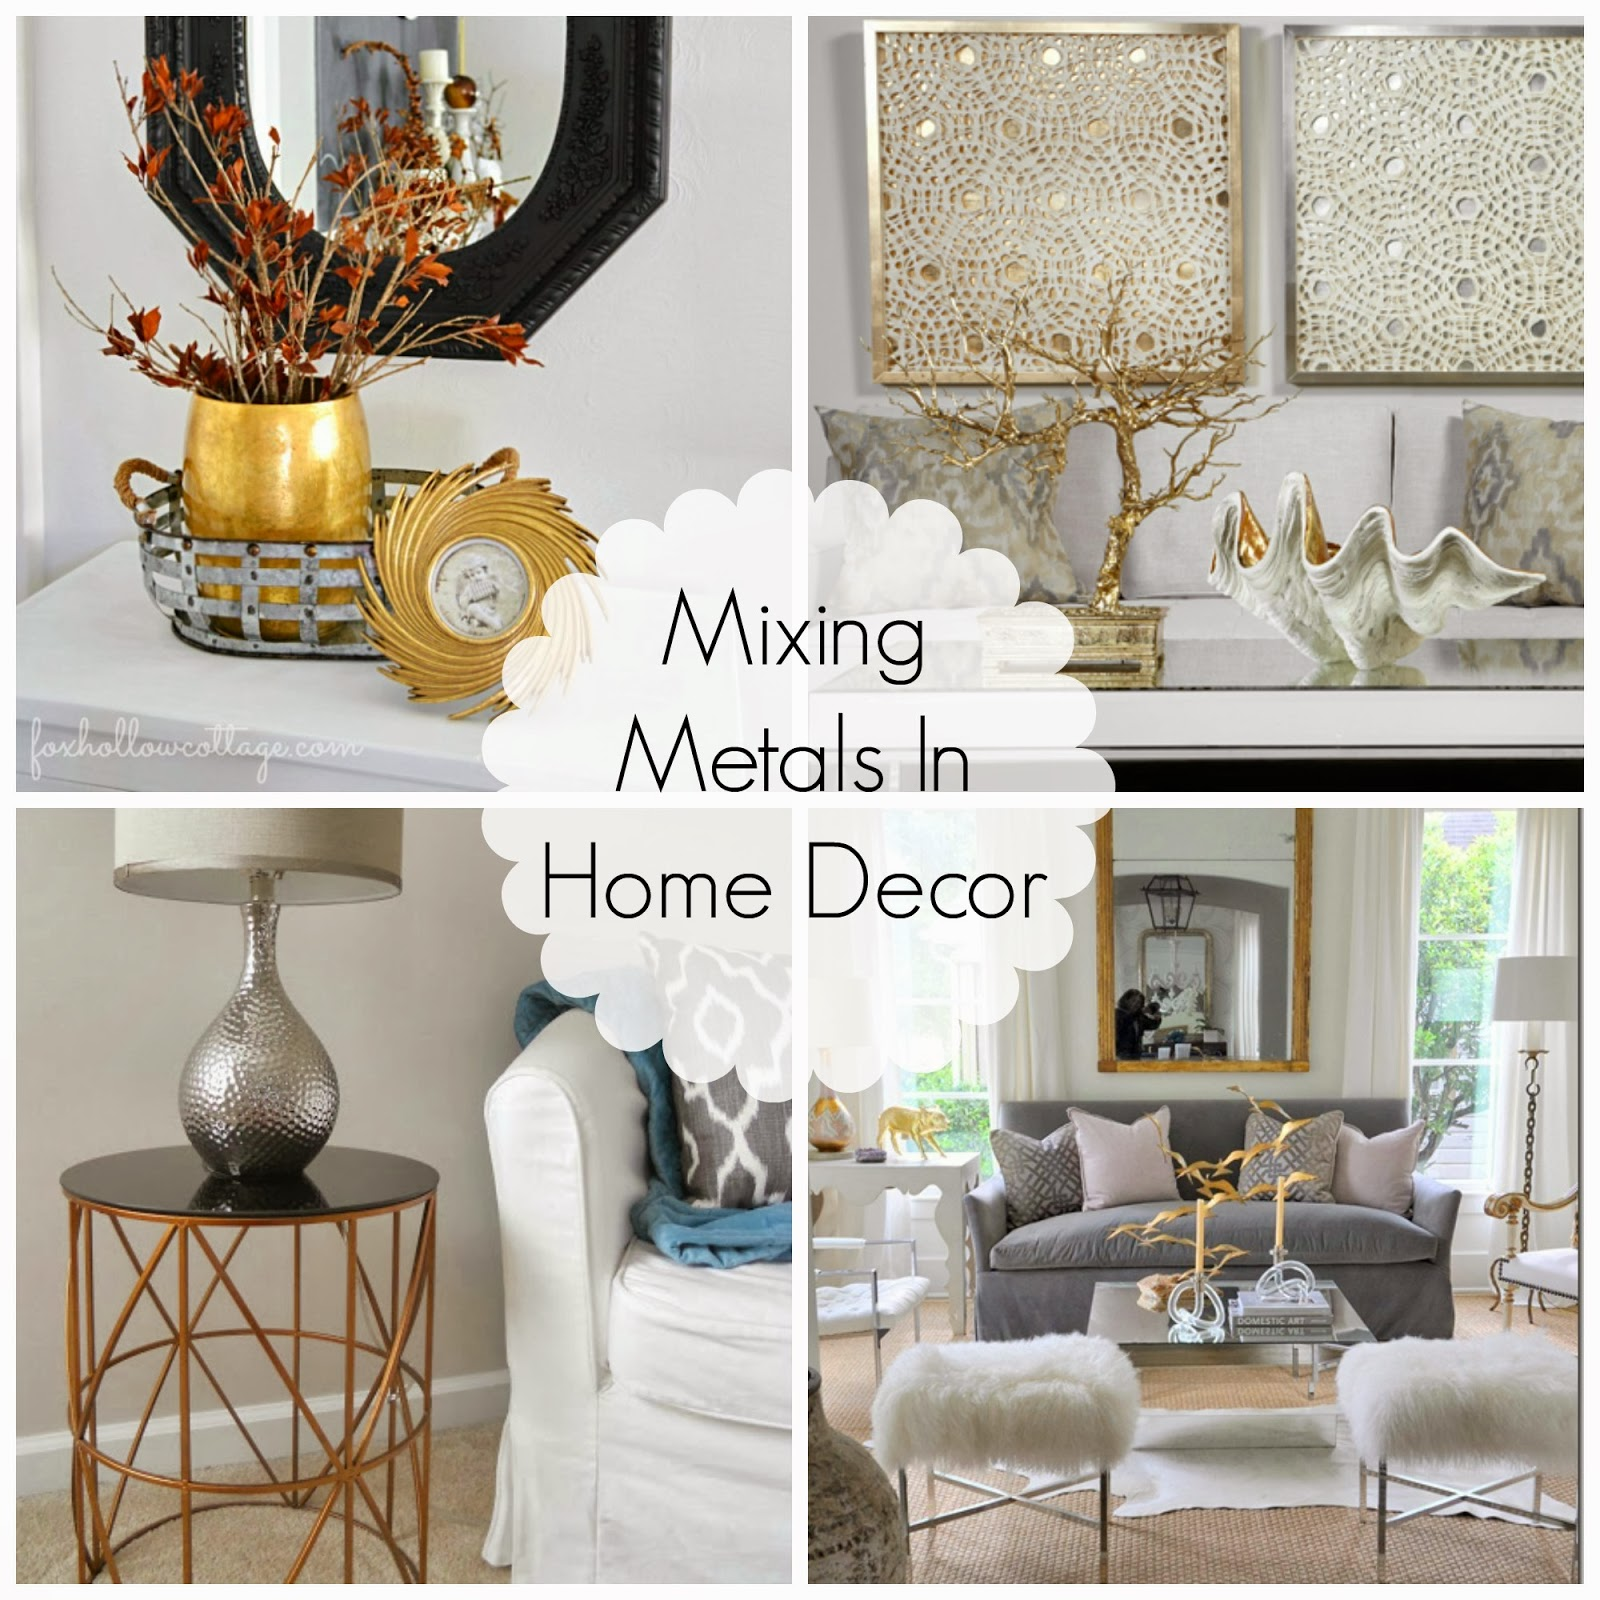 Decorating cents mixing metals in home decor Home decor gold